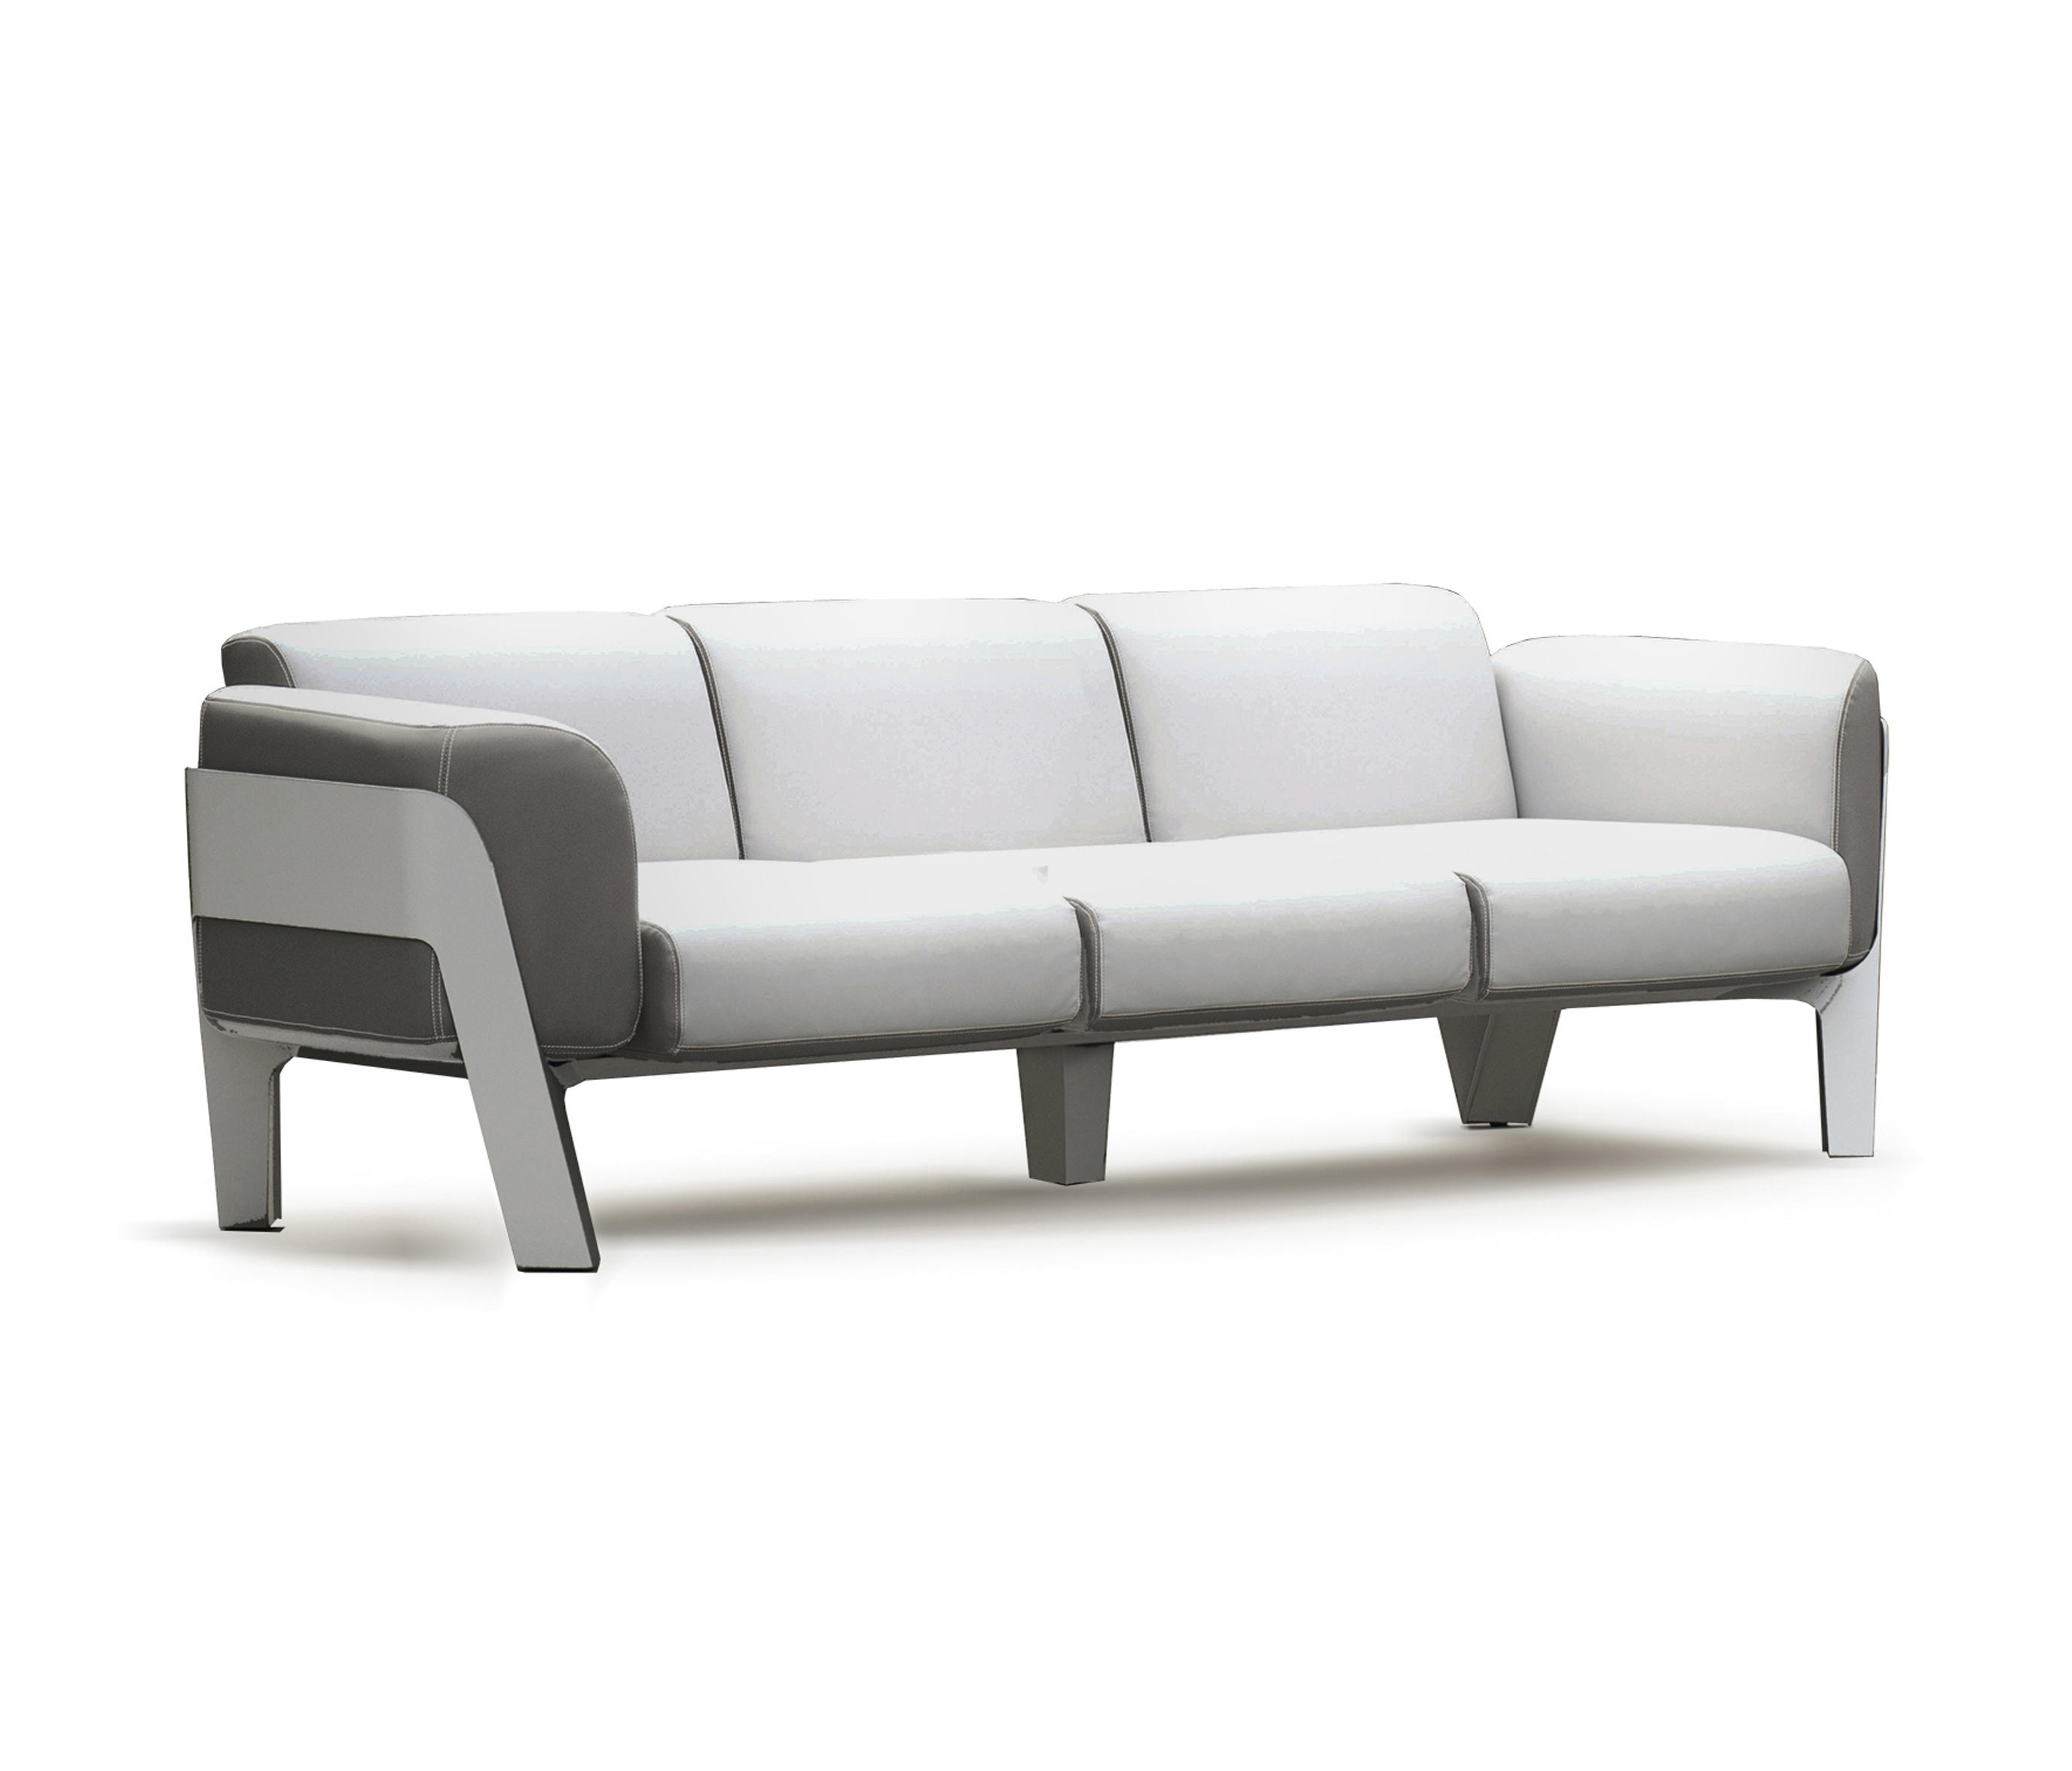 BIENVENUE | LARGE SOFA - Sofas von EGO Paris | Architonic